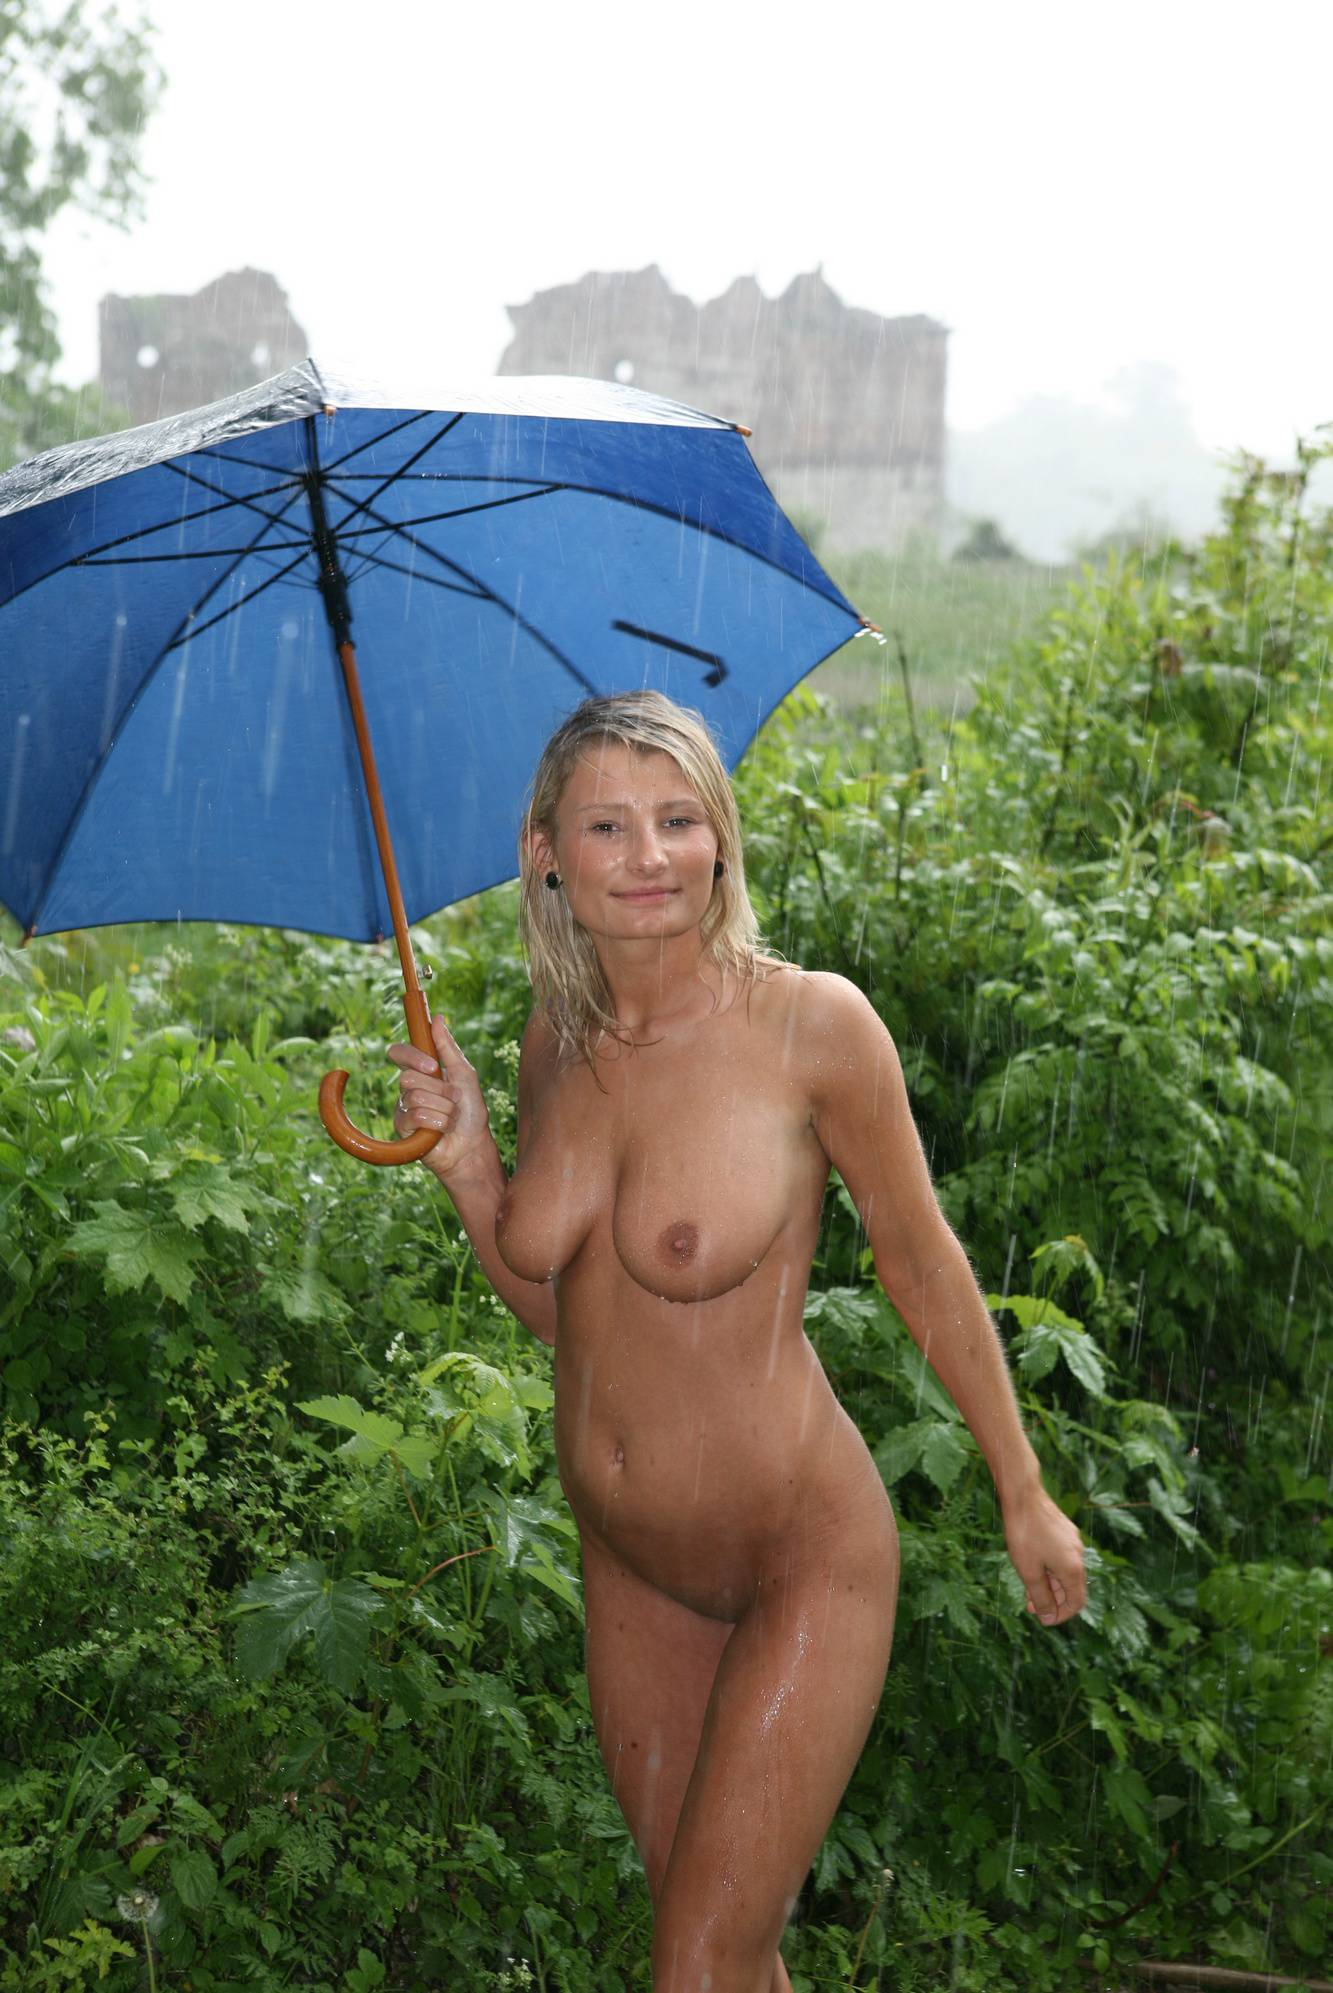 Nudist Pics Castle Umbrella Dance - 2